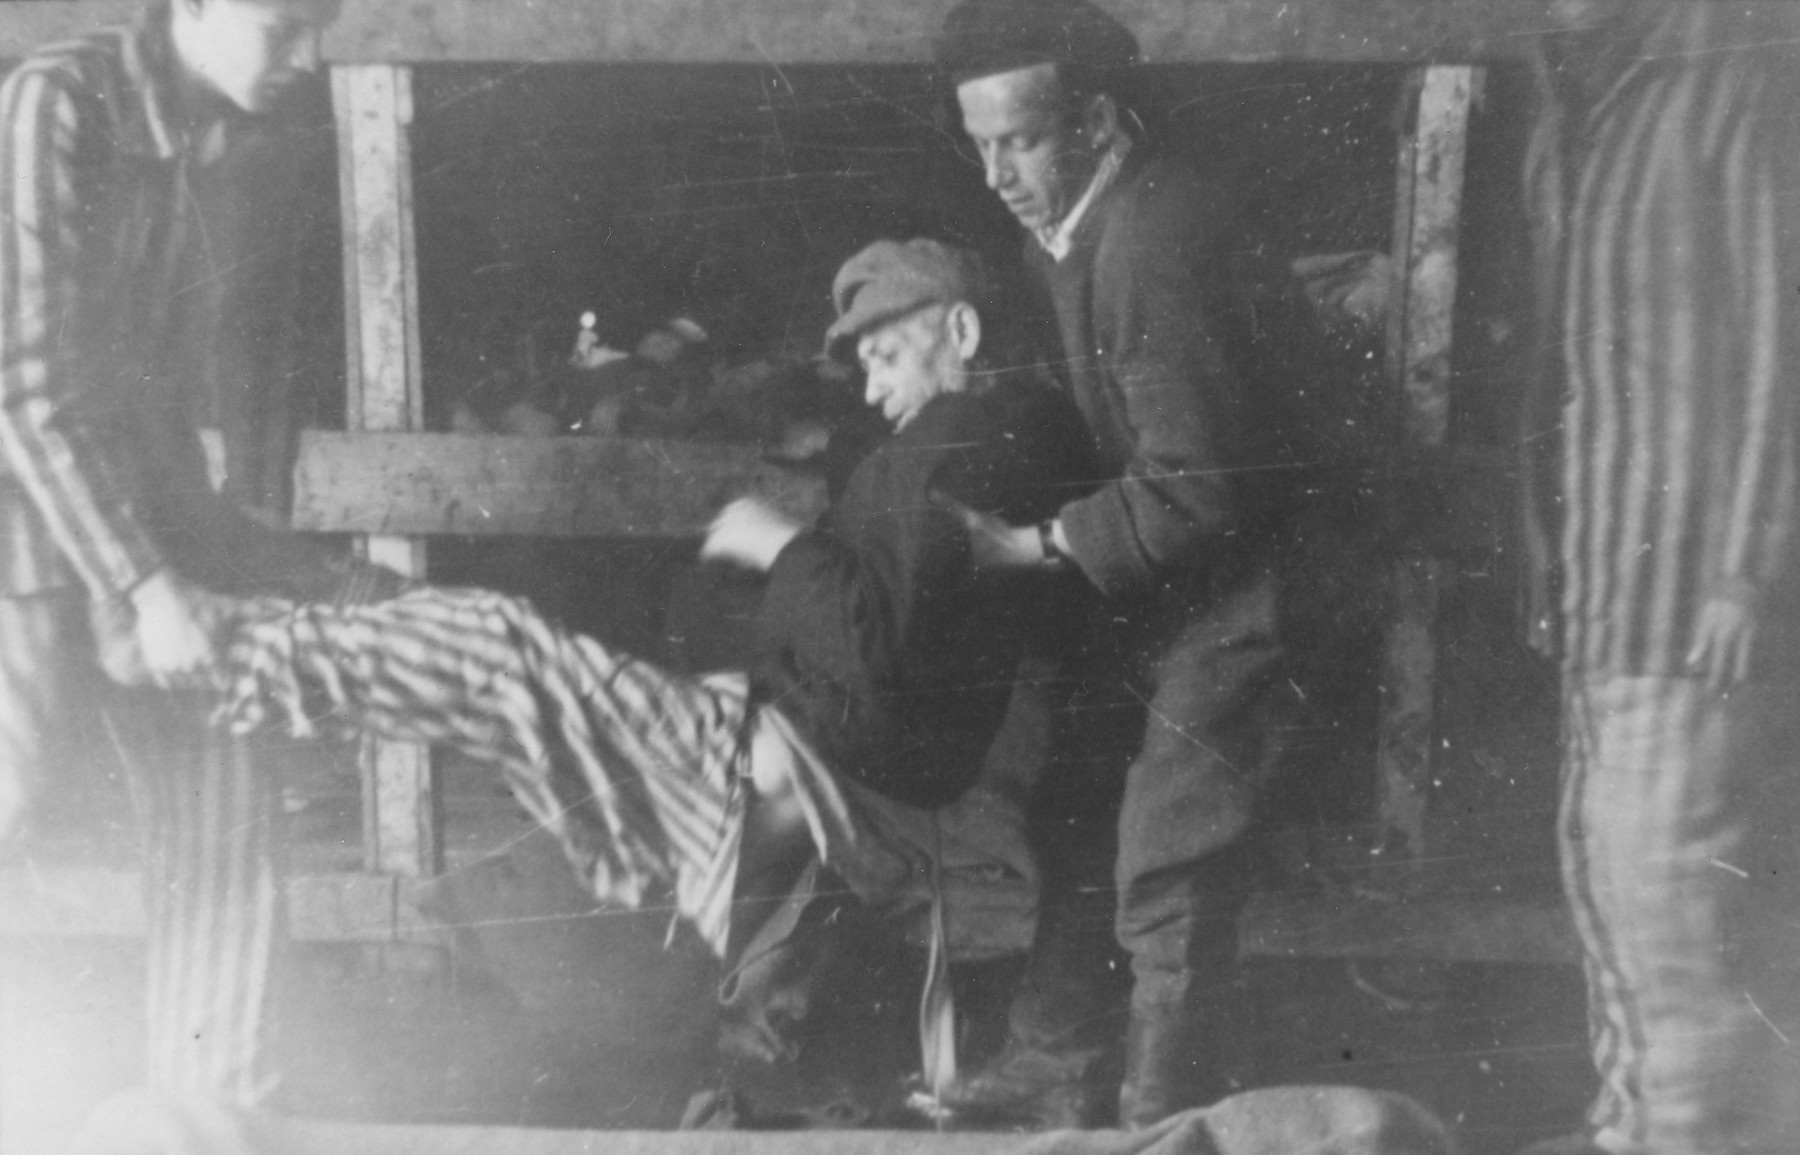 Two survivors lift a weaker comrade from a bunk to a stretcher in a barracks in the newly liberated Buchenwald concentration camp.